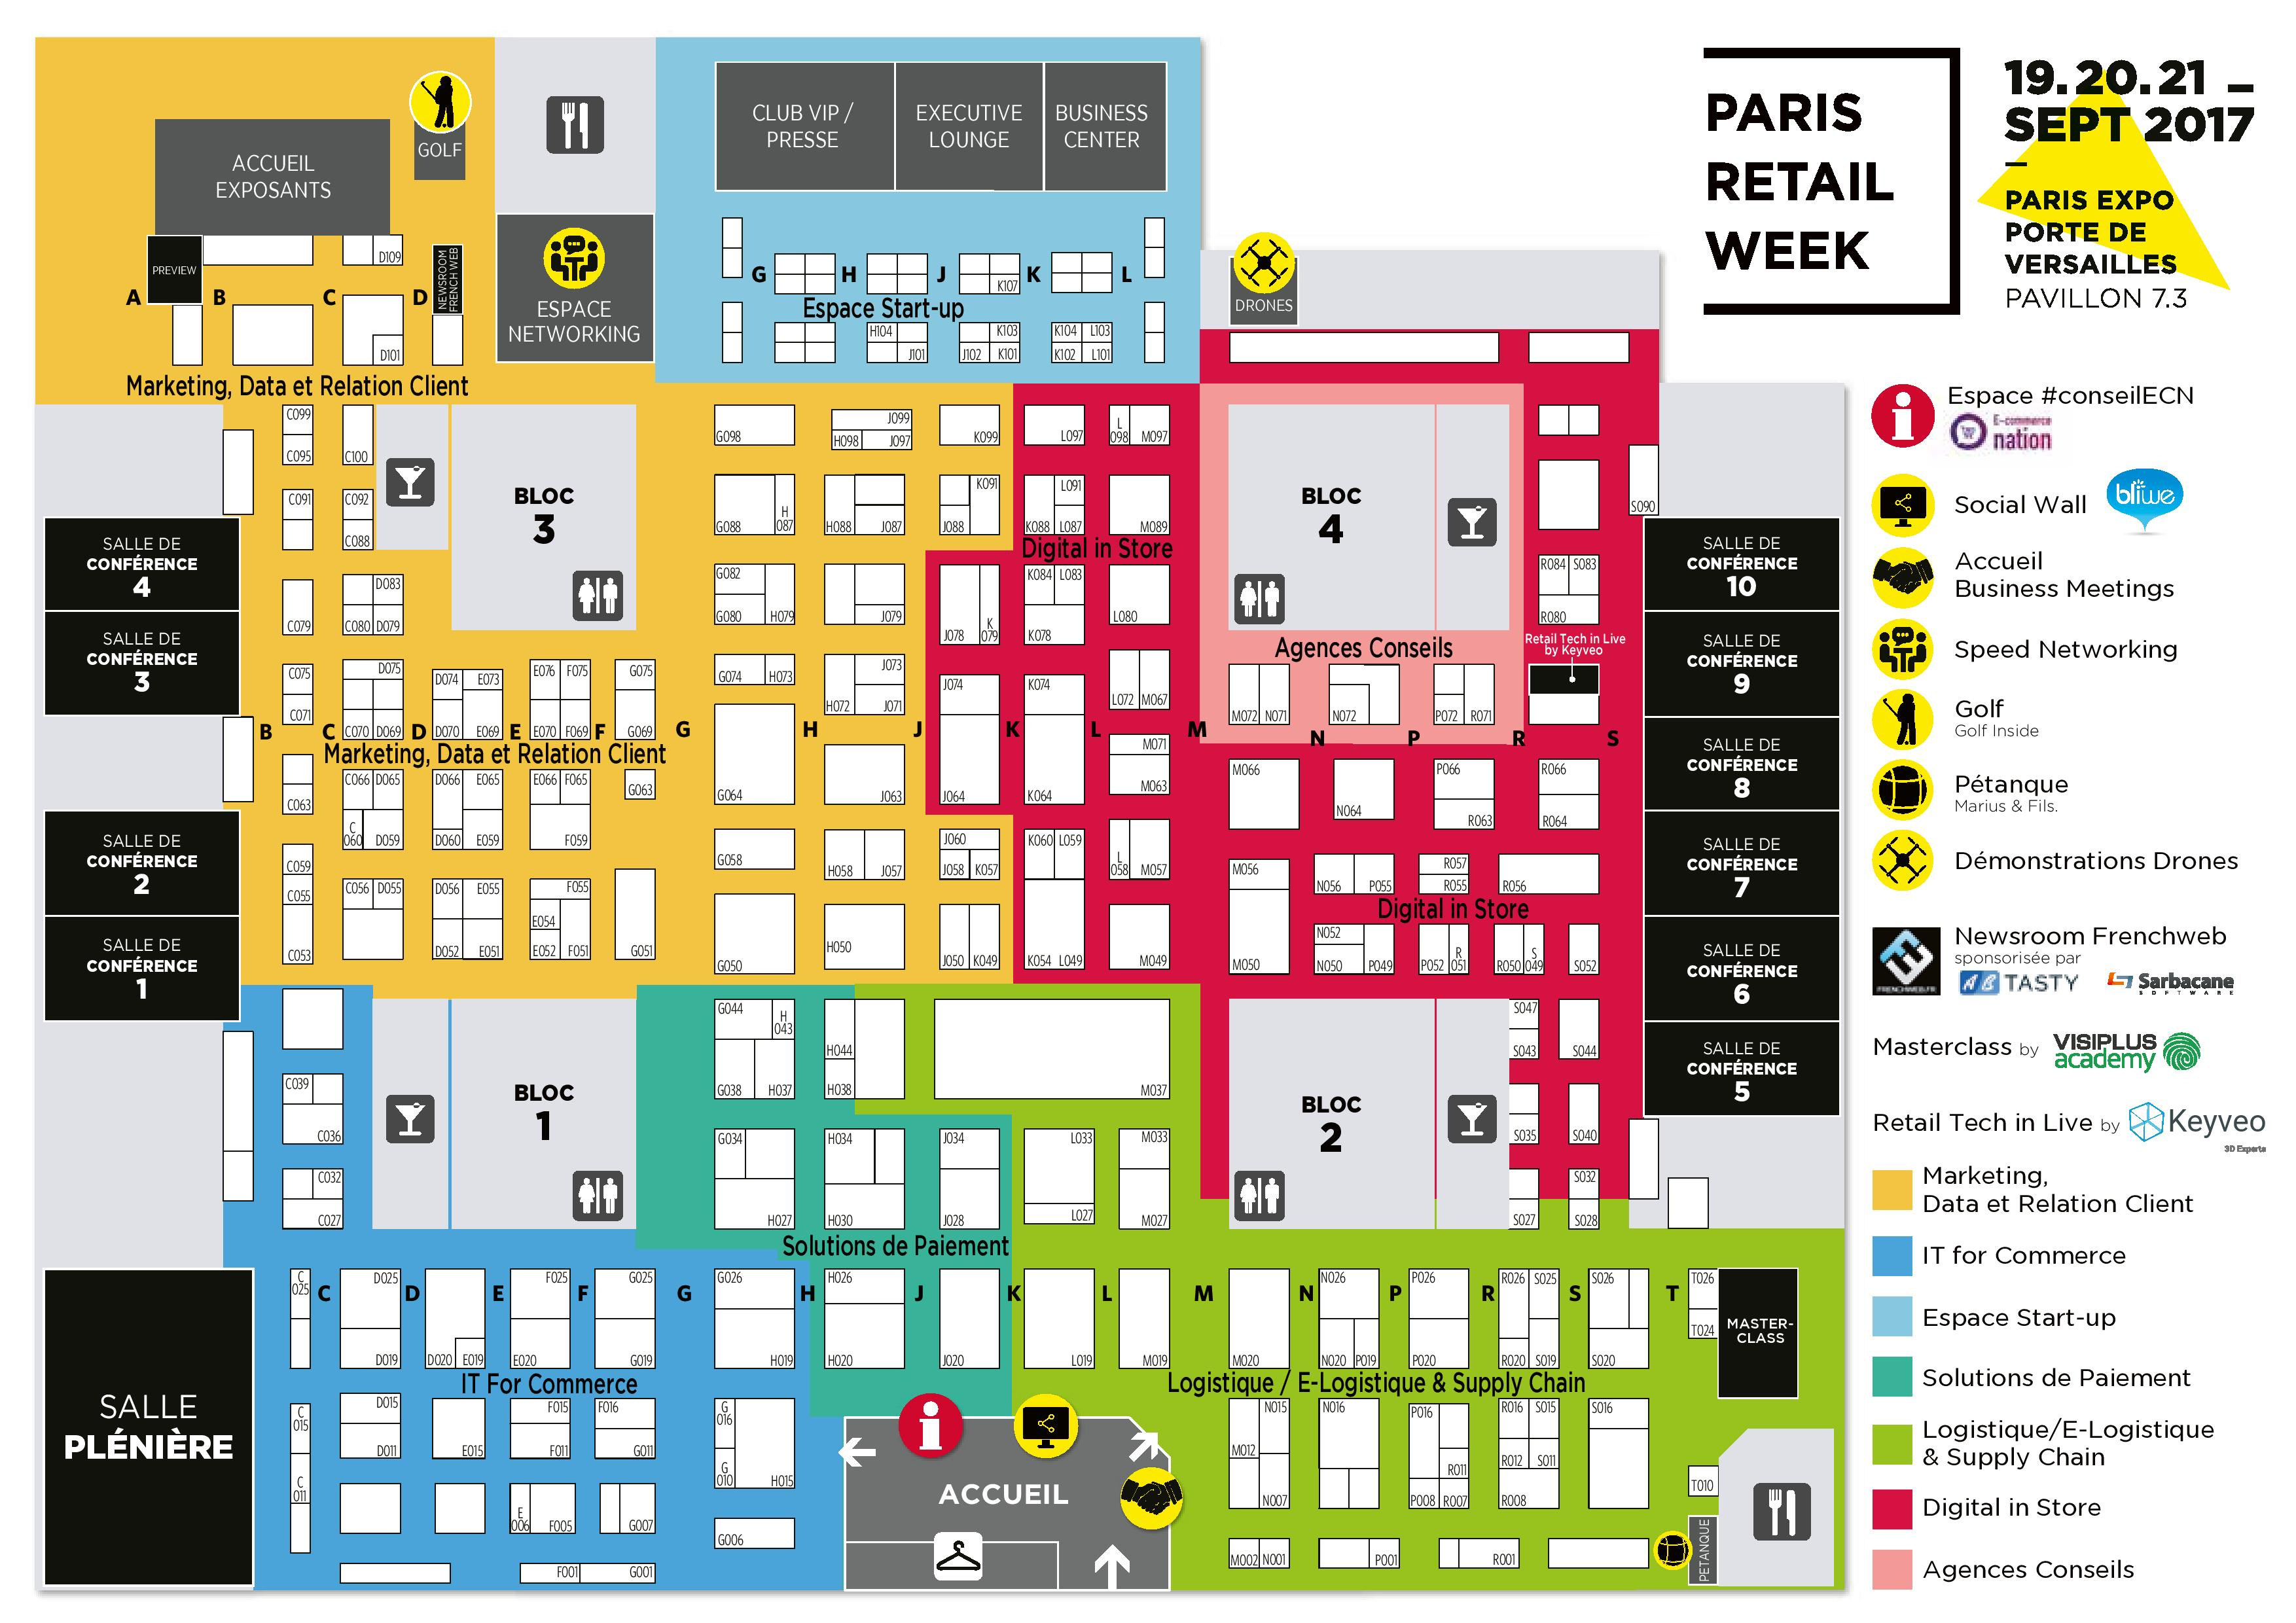 Paris Retail Week 2017 Floor Plan